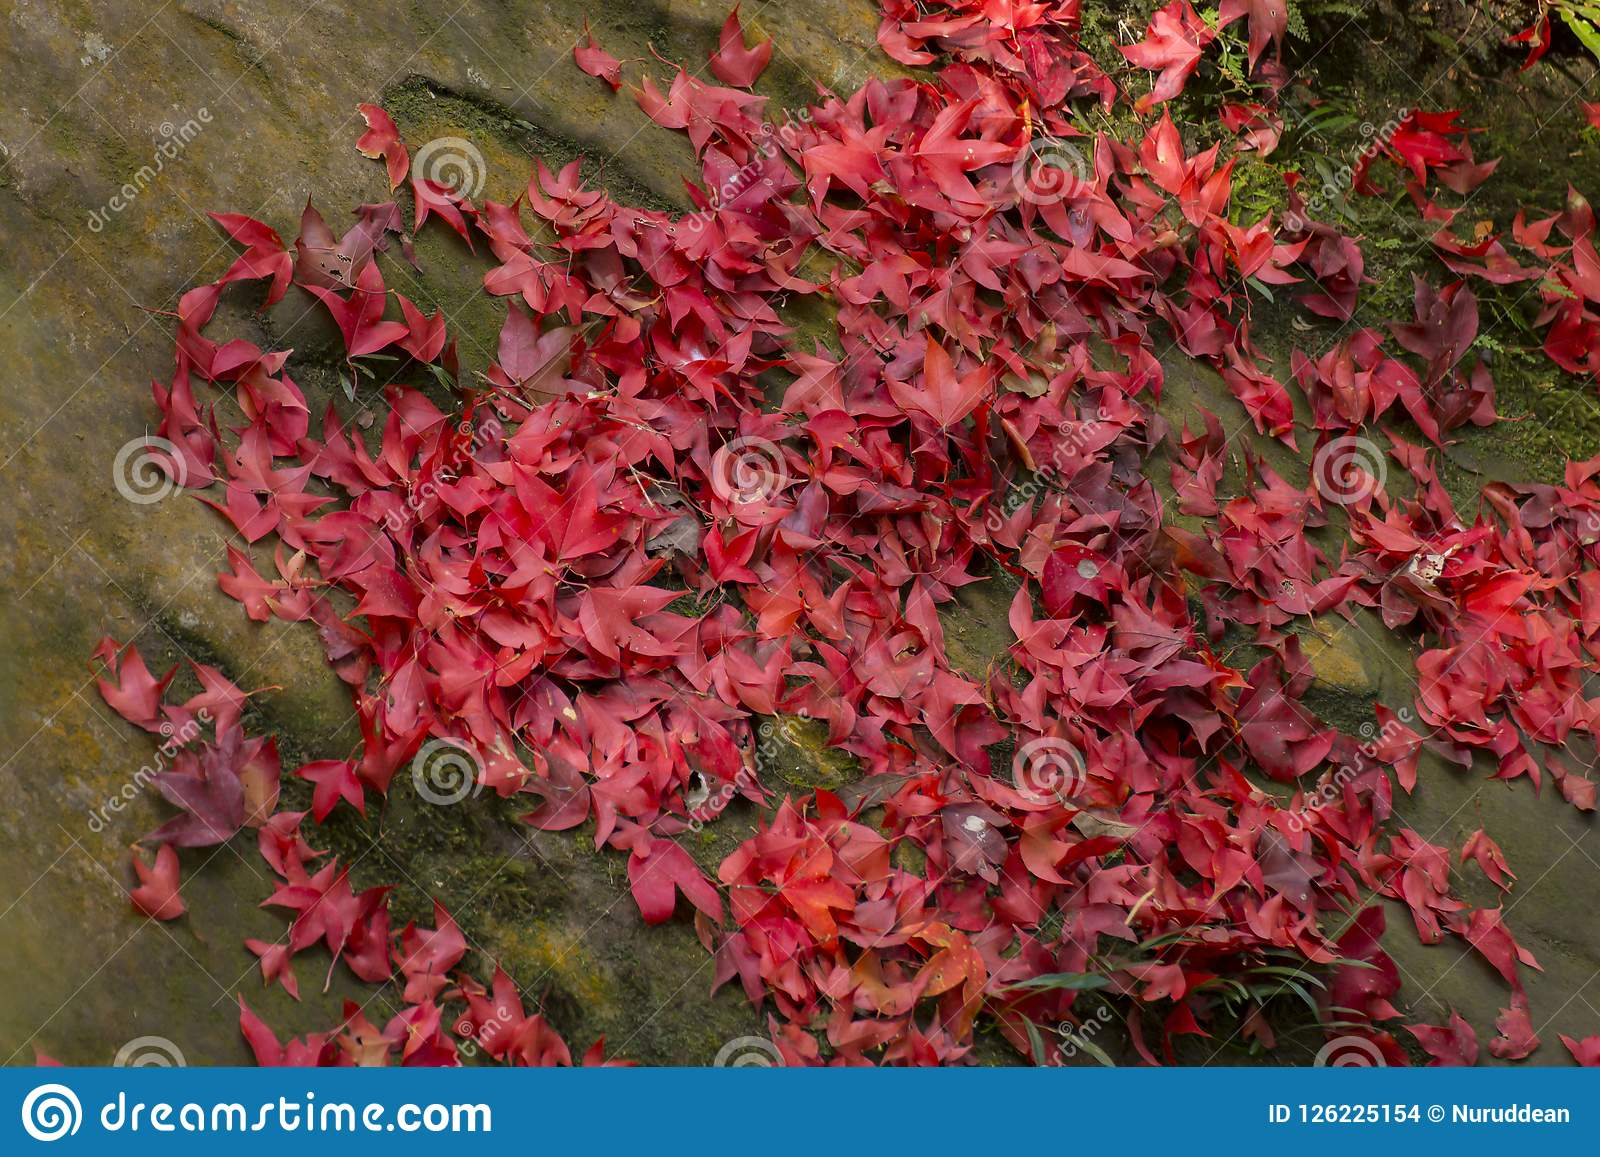 Red maple leaf fall on ground during autumn.  Stock Images